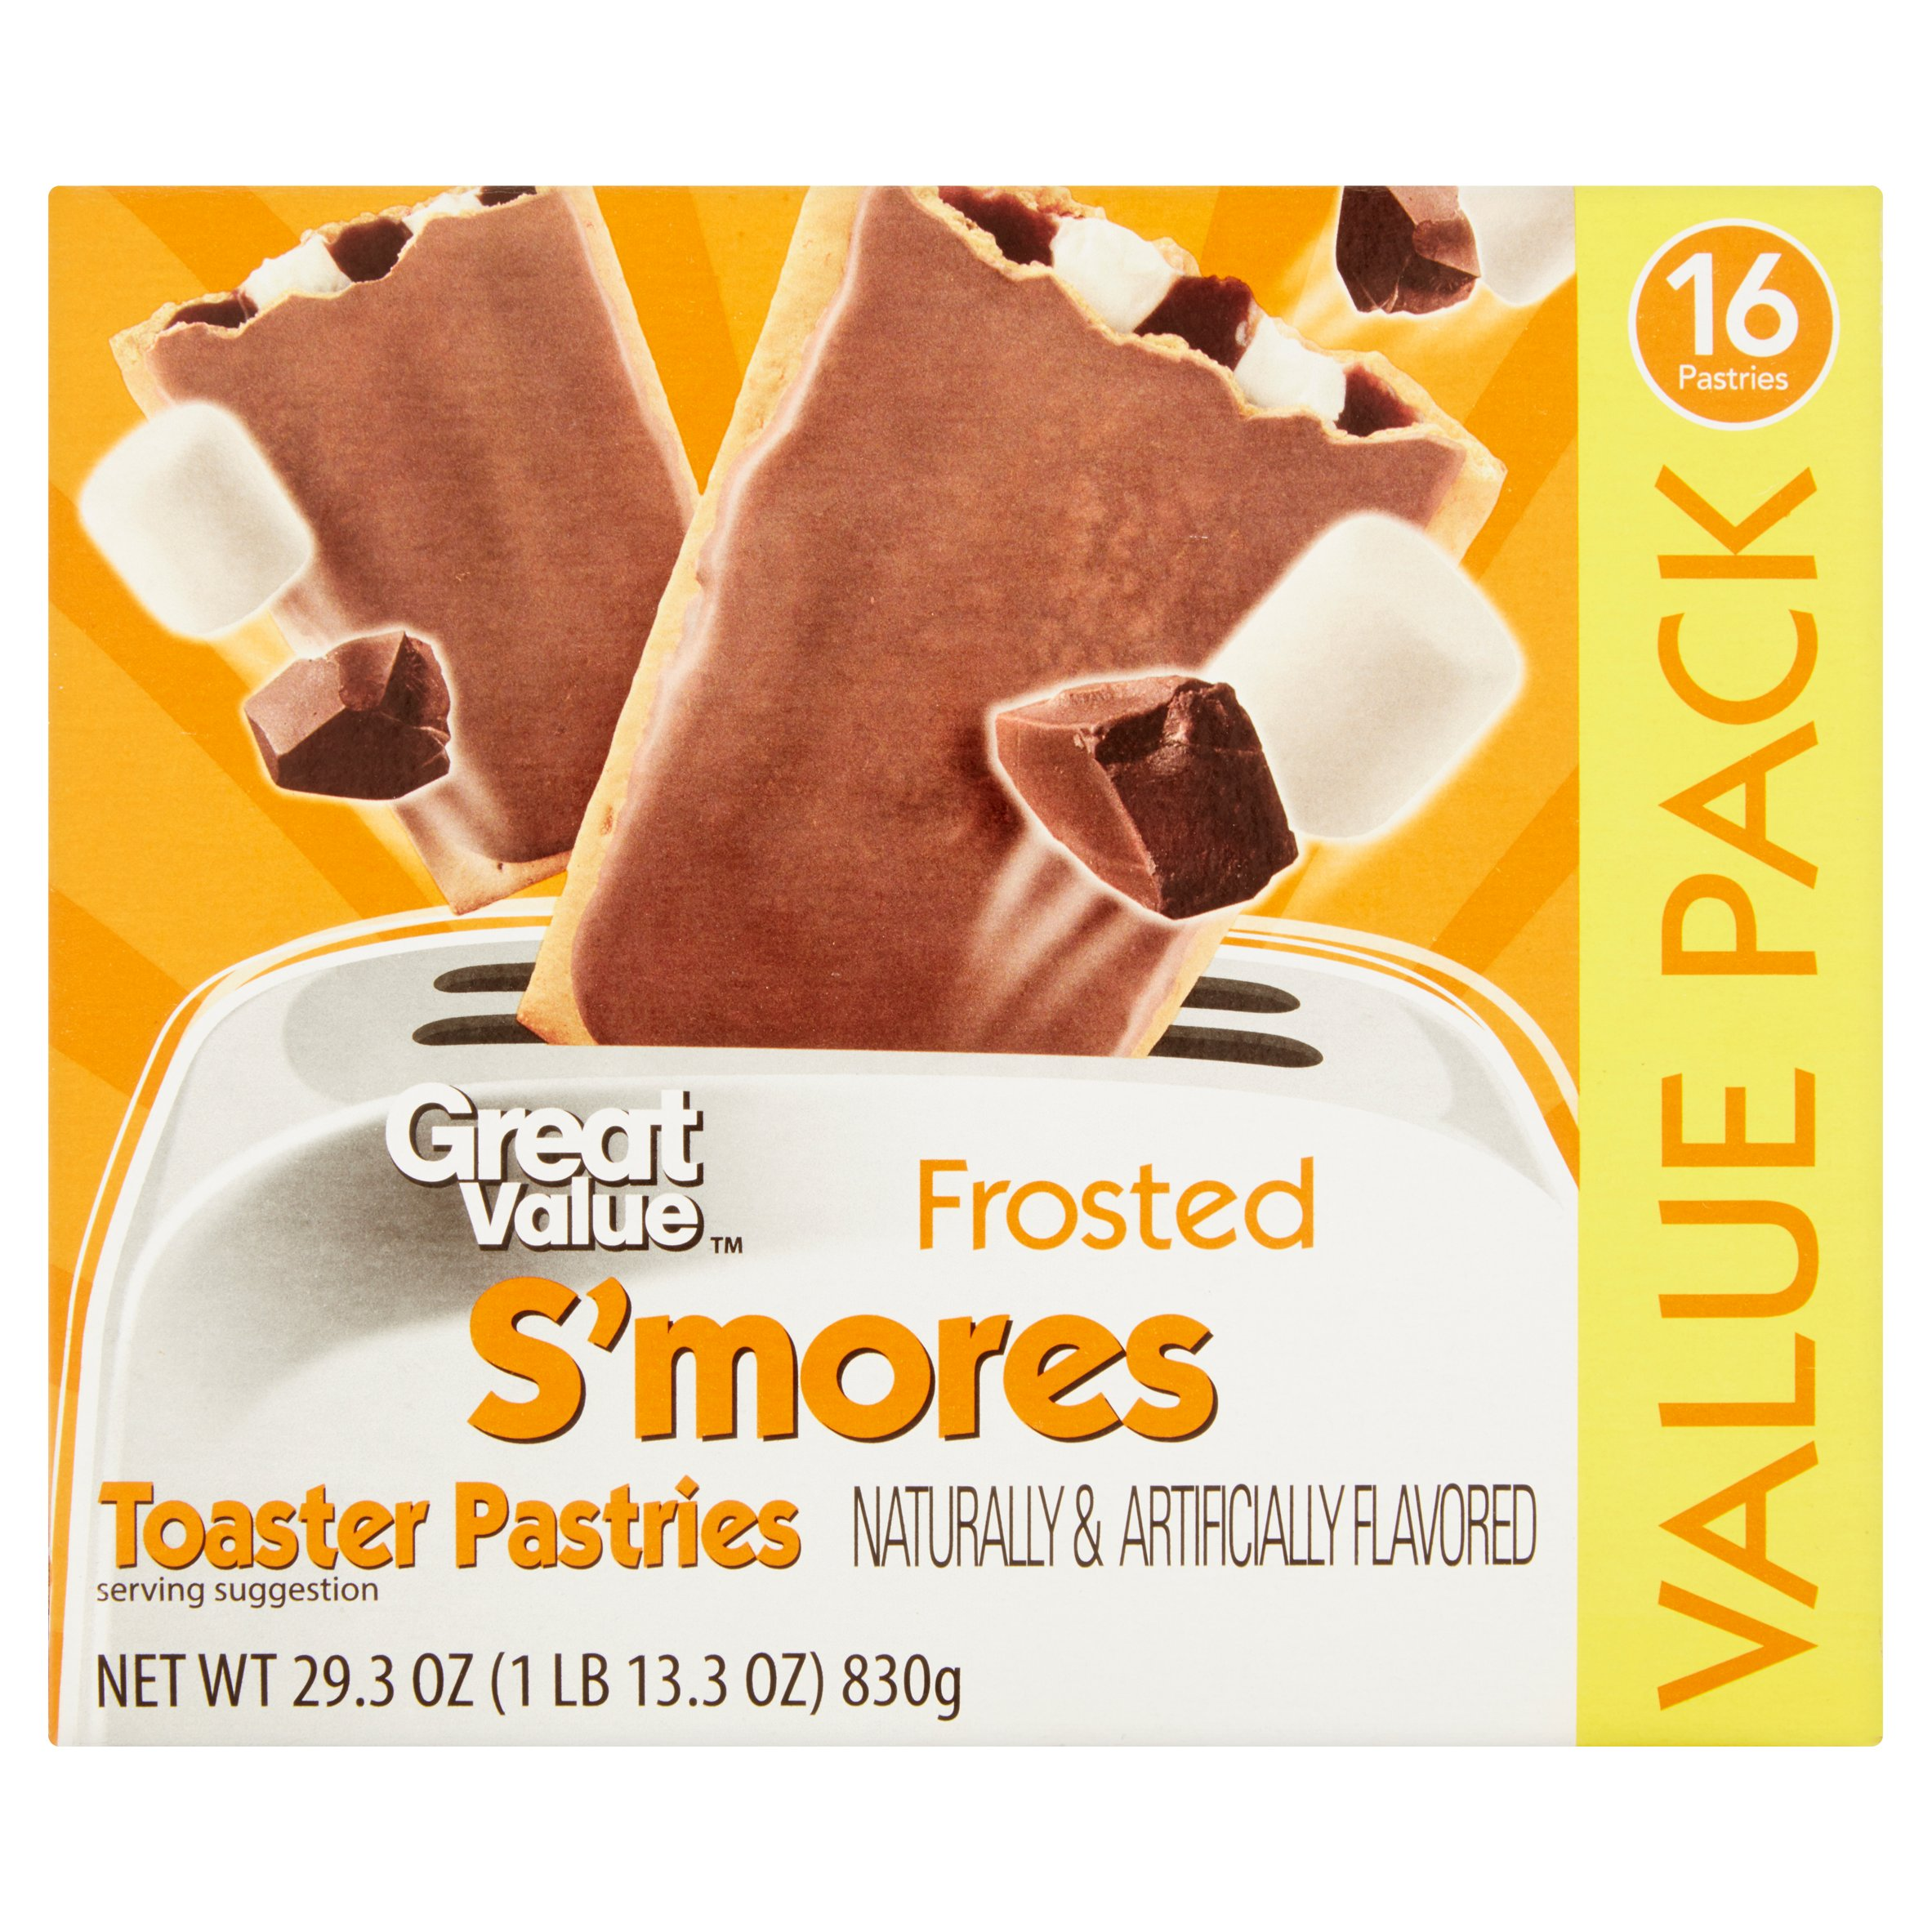 Great Value Frosted S'mores Toaster Pastries, 16 ct, 29.3 oz by Wal-Mart Stores, Inc.